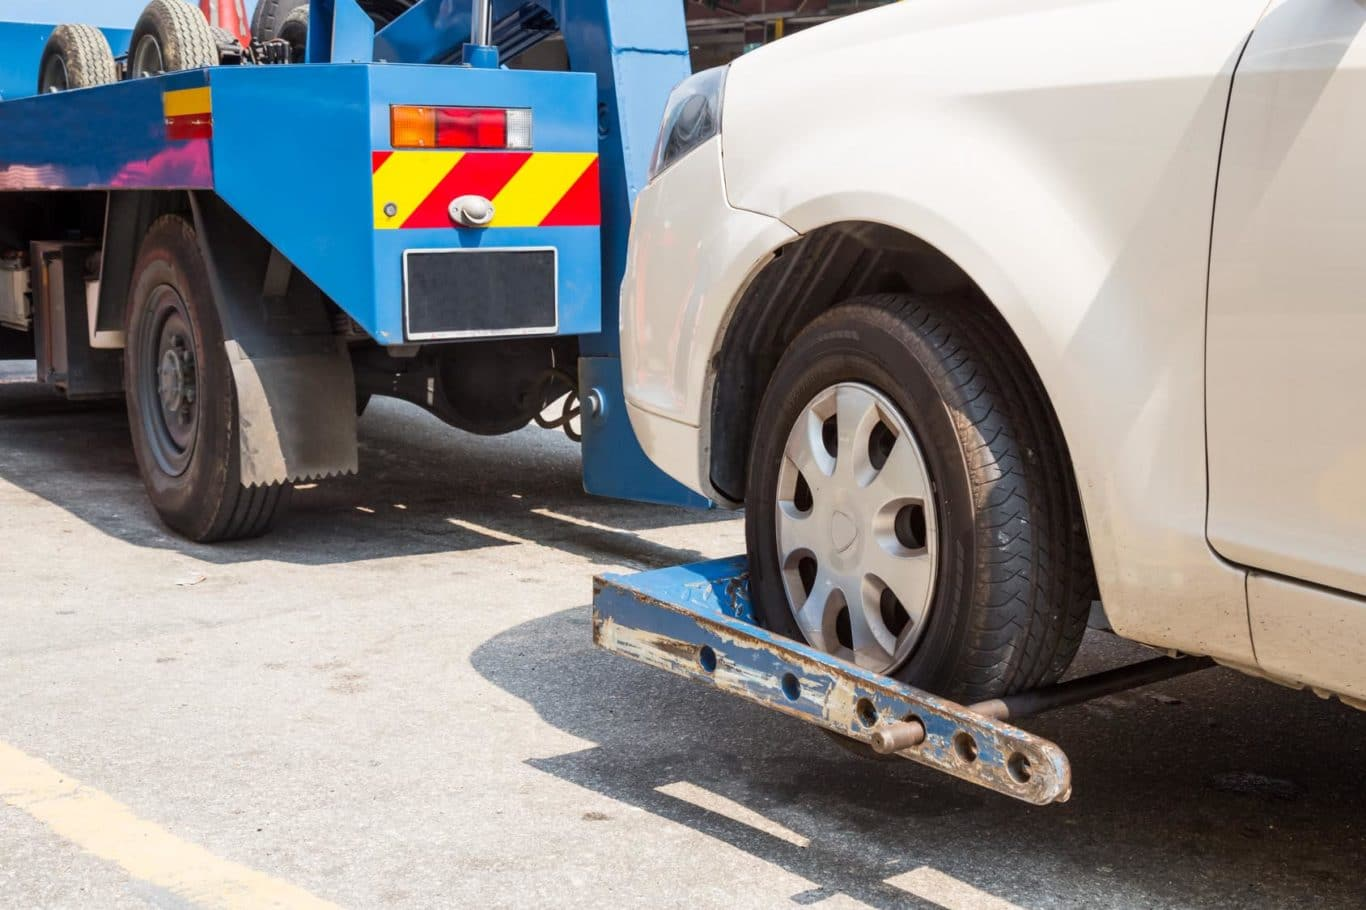 Dublin 5 (D5) expert Towing And Recovery Dublin services